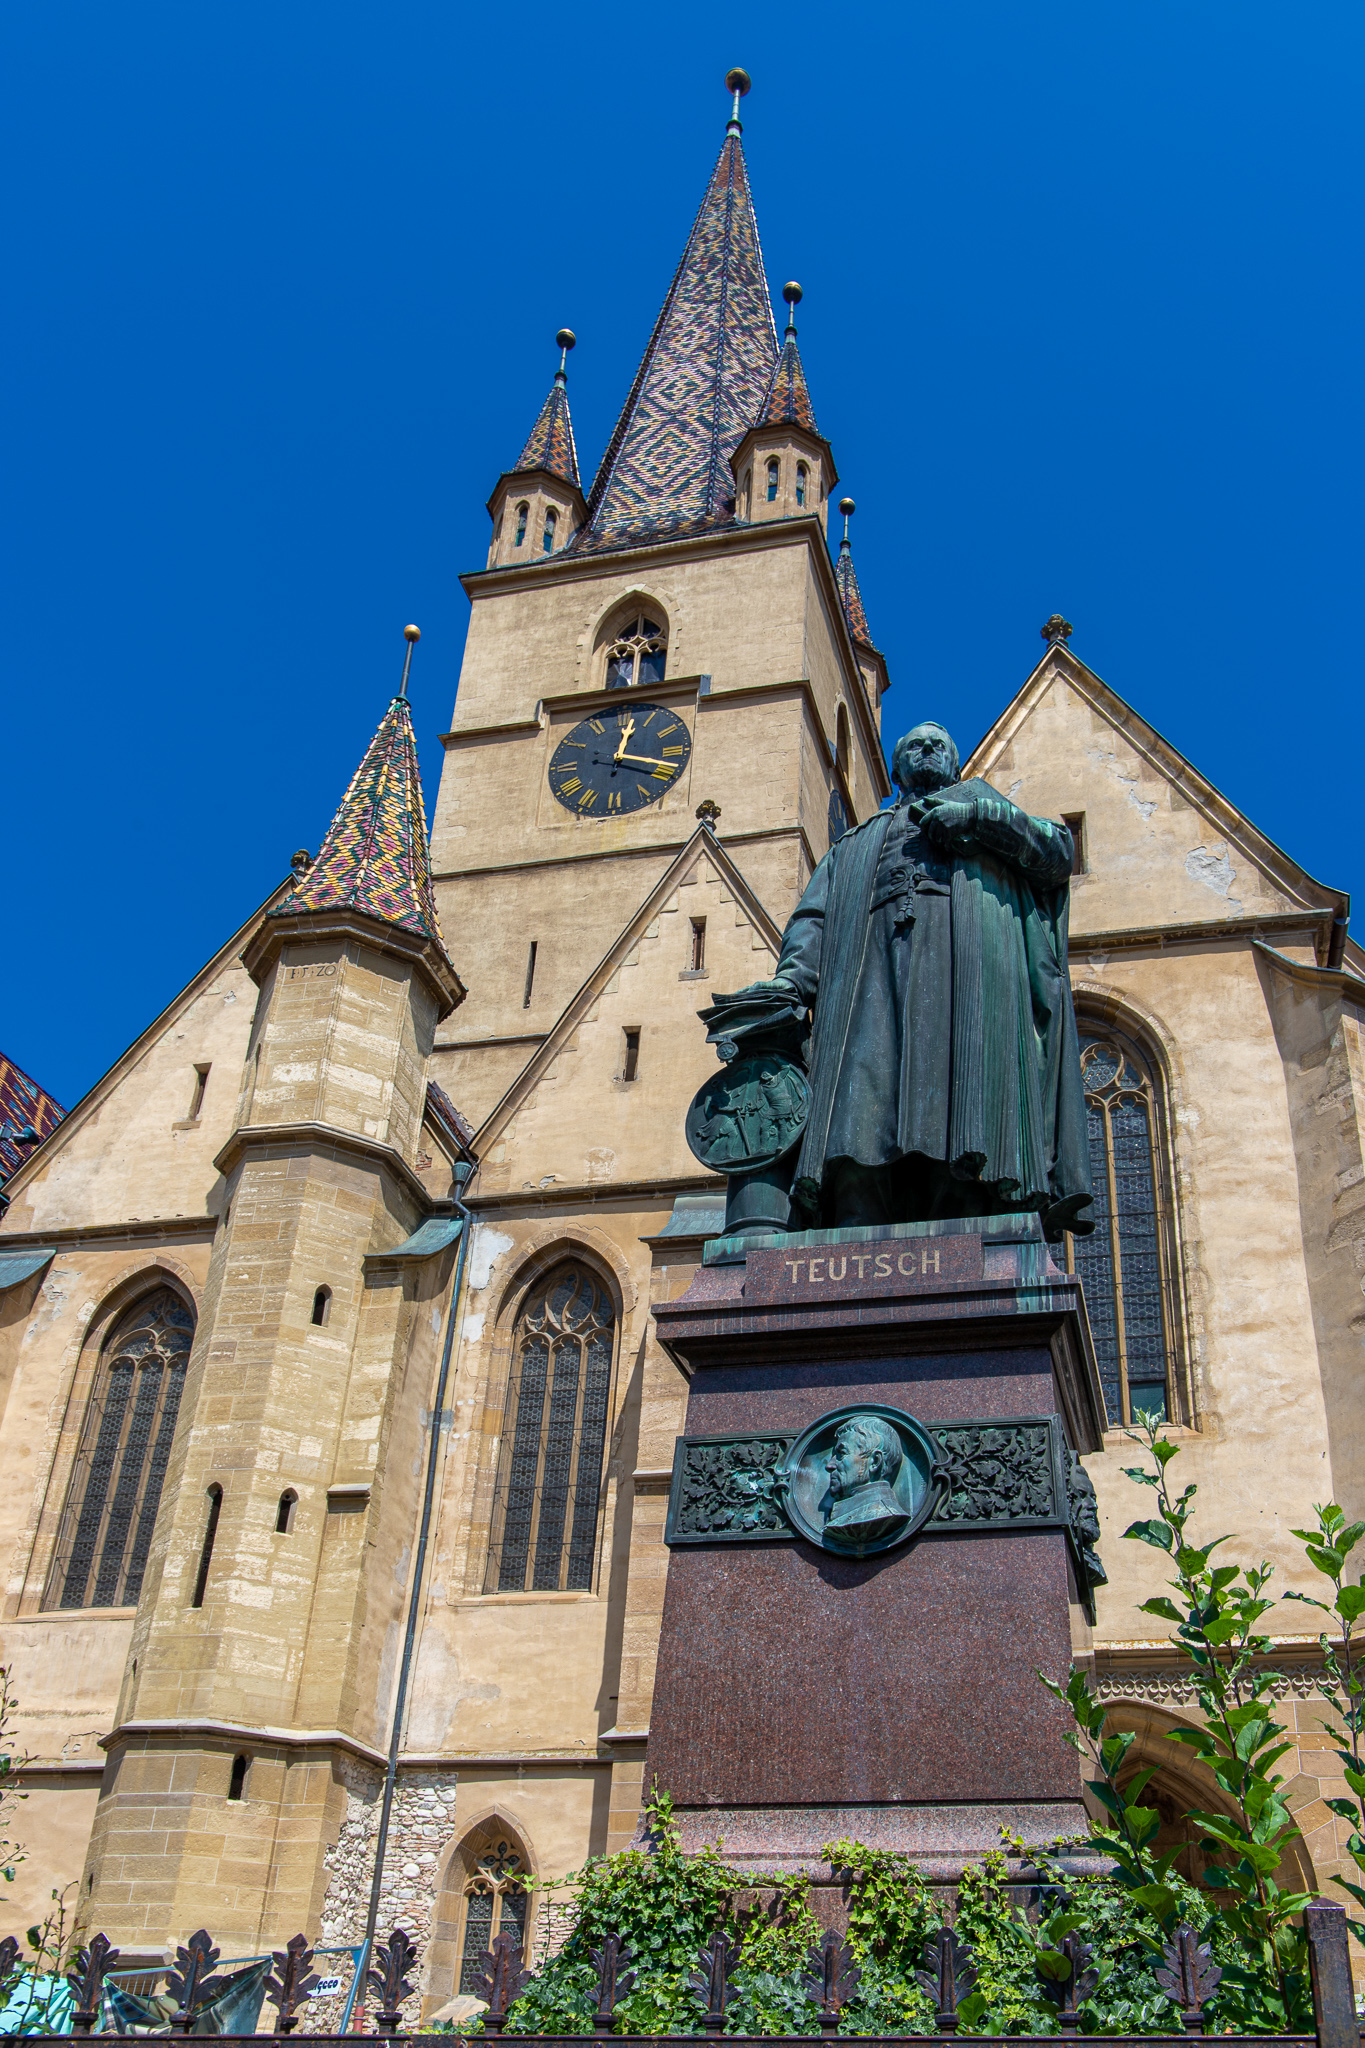 Cathedral with bronze statue of Bishop Georg Daniel Teutsch outside